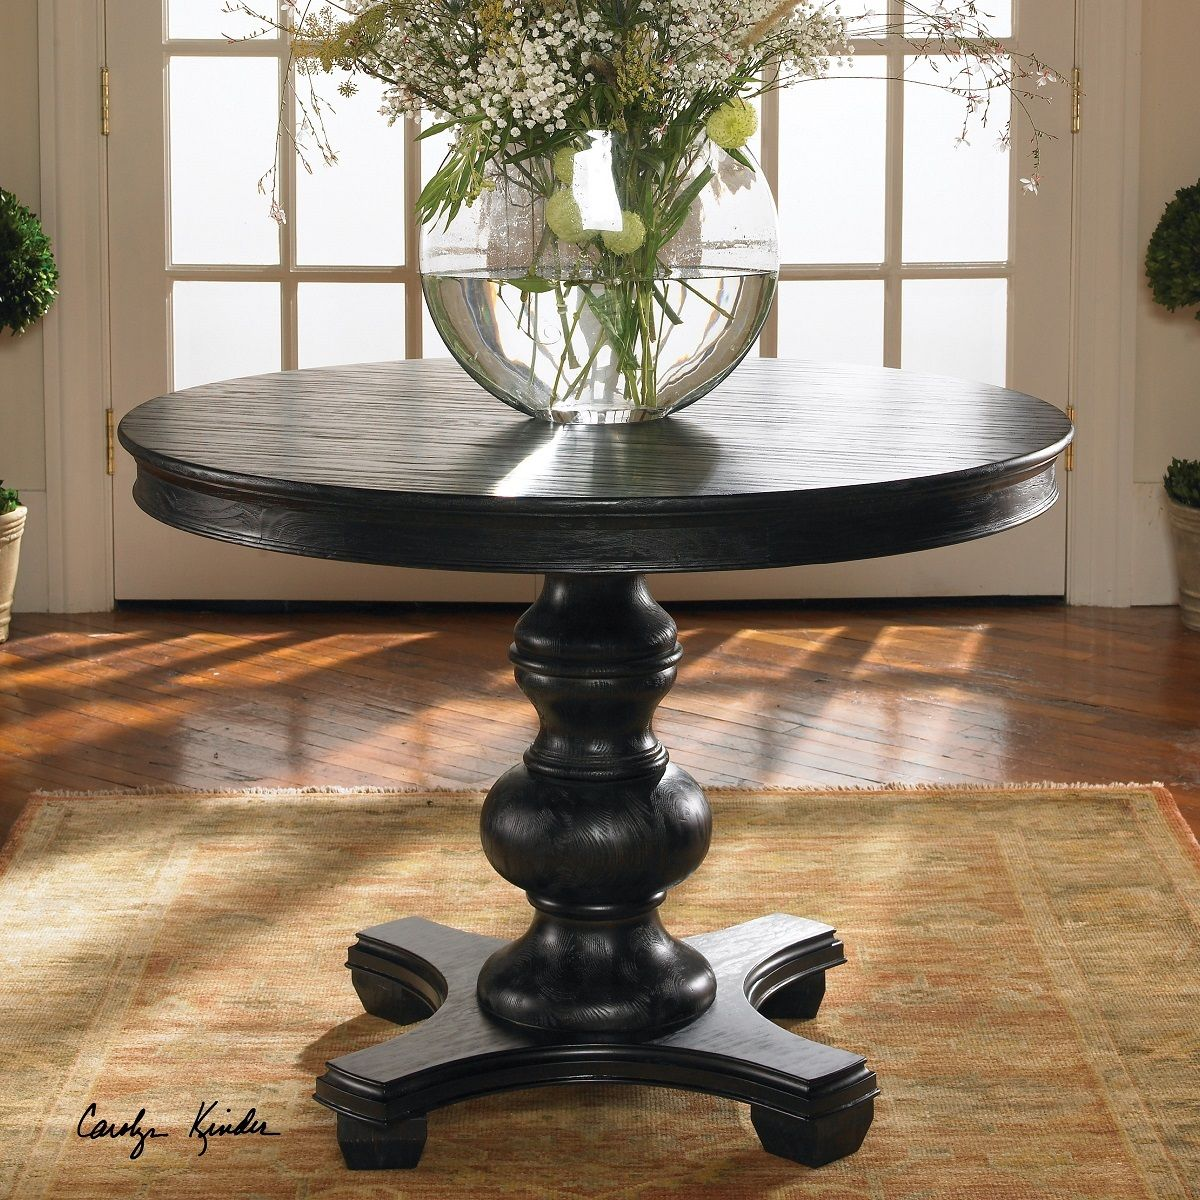 Brynmore Black Round Pedestal Table 42 Round Pedestal Dining Table Pedestal Kitchen Table Black Round Dining Table